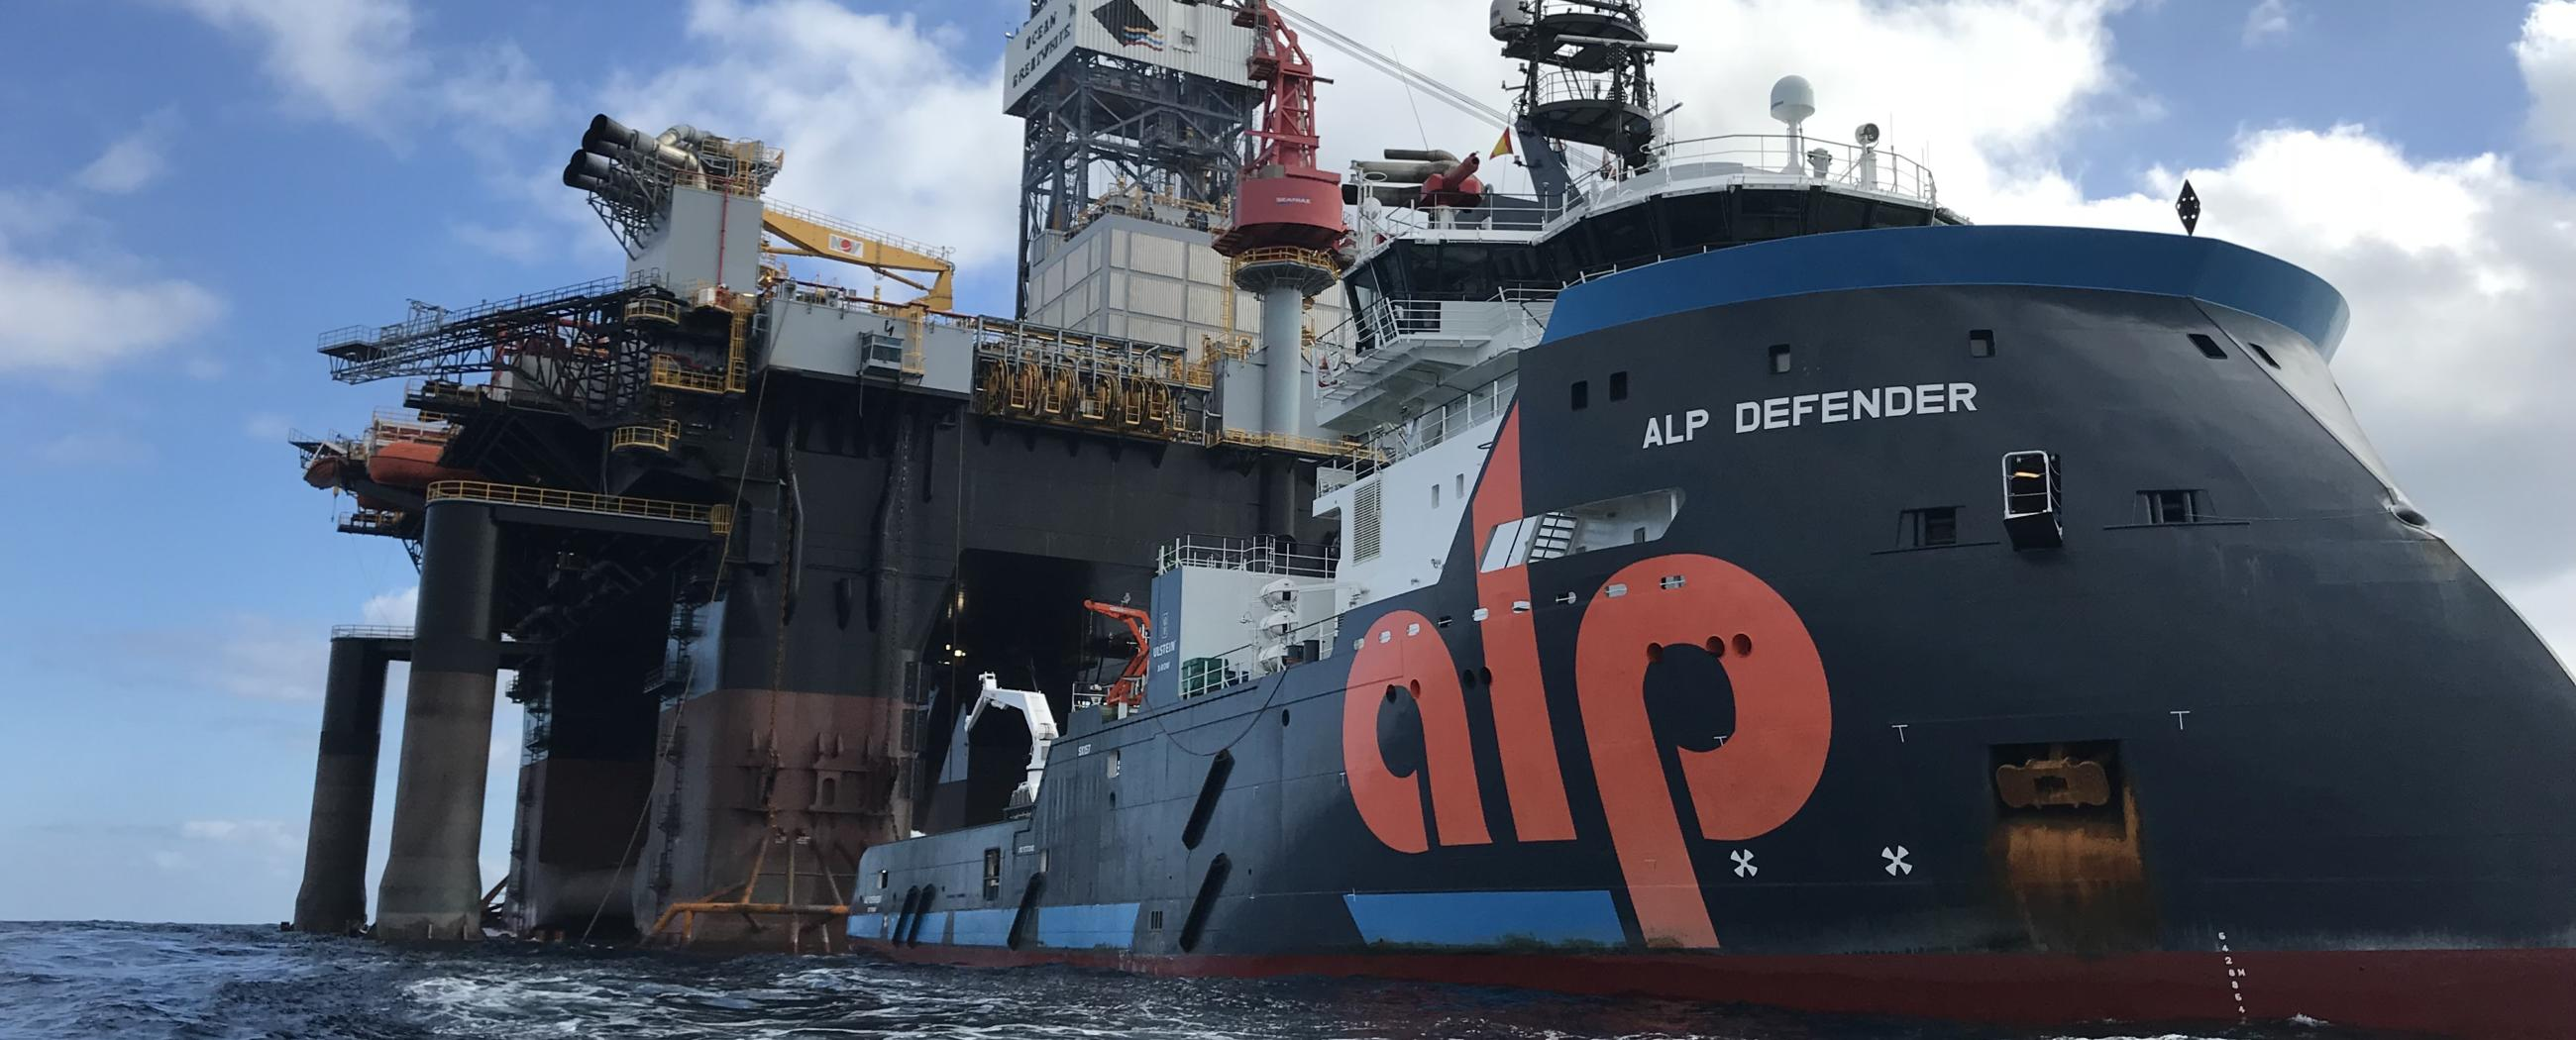 ALP-Defender-Ocean-Great-white-Diamond-largest-rig.JPG